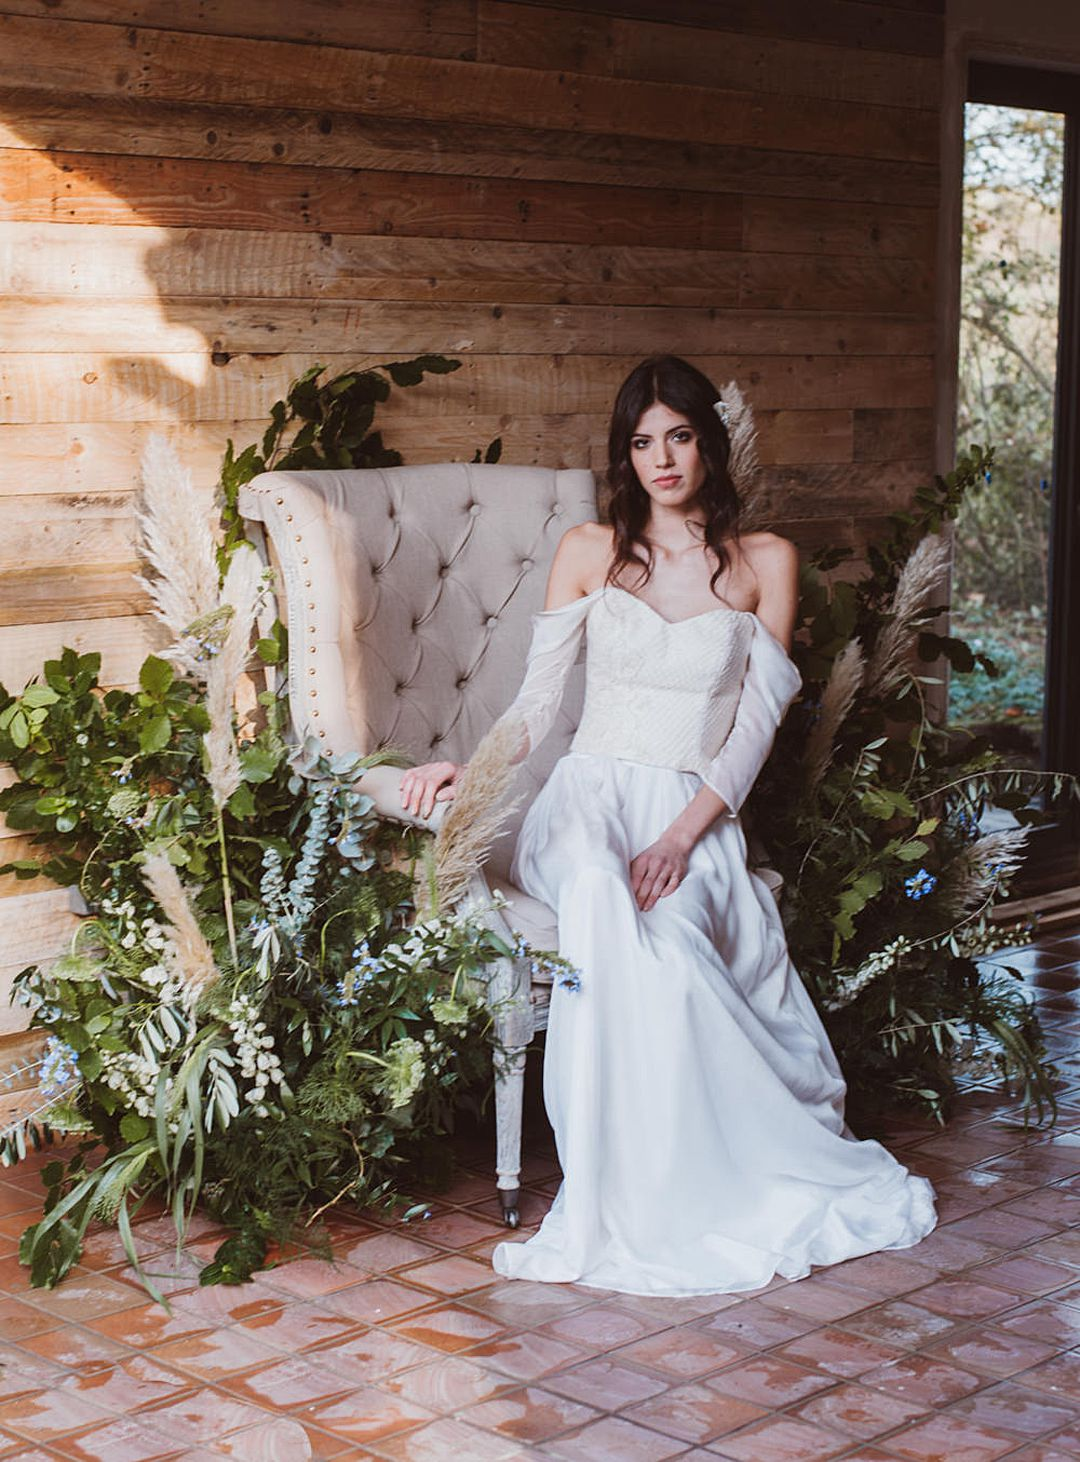 boho bride in wedding chair surrounded by white, green and blue wild flowers wearing Jessica Turner Bridal Separates